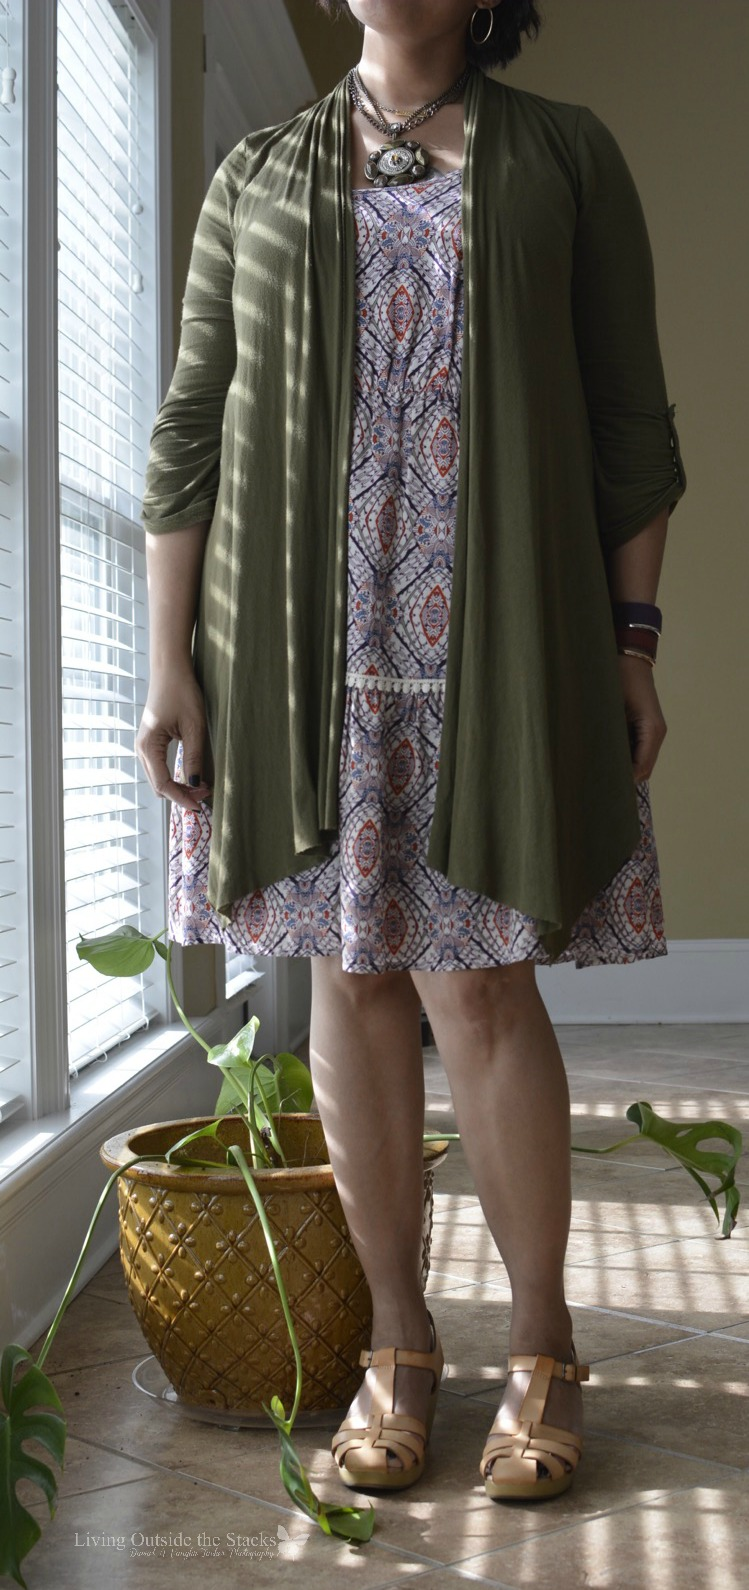 Olive Cardigan Print Dress and Neutral Clogs {living outside the stacks} #livingoutsidethestacks